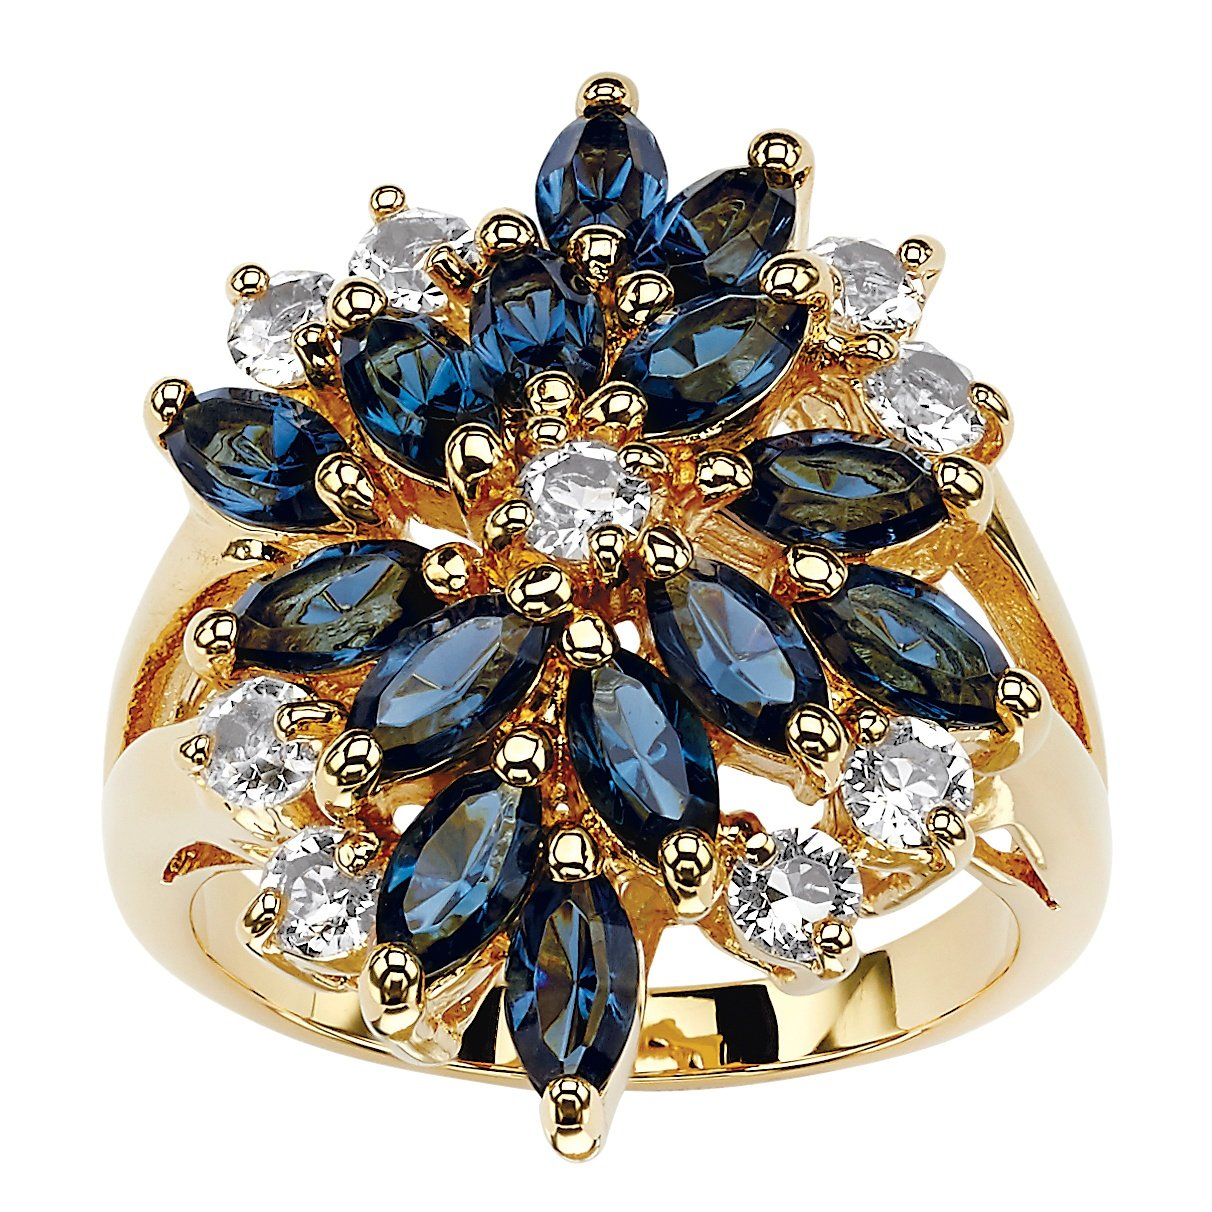 Palm Beach Jewelry 18K Gold-Plated Marquise Cut Blue Floral Ring Made Swarovski Elements Size 8